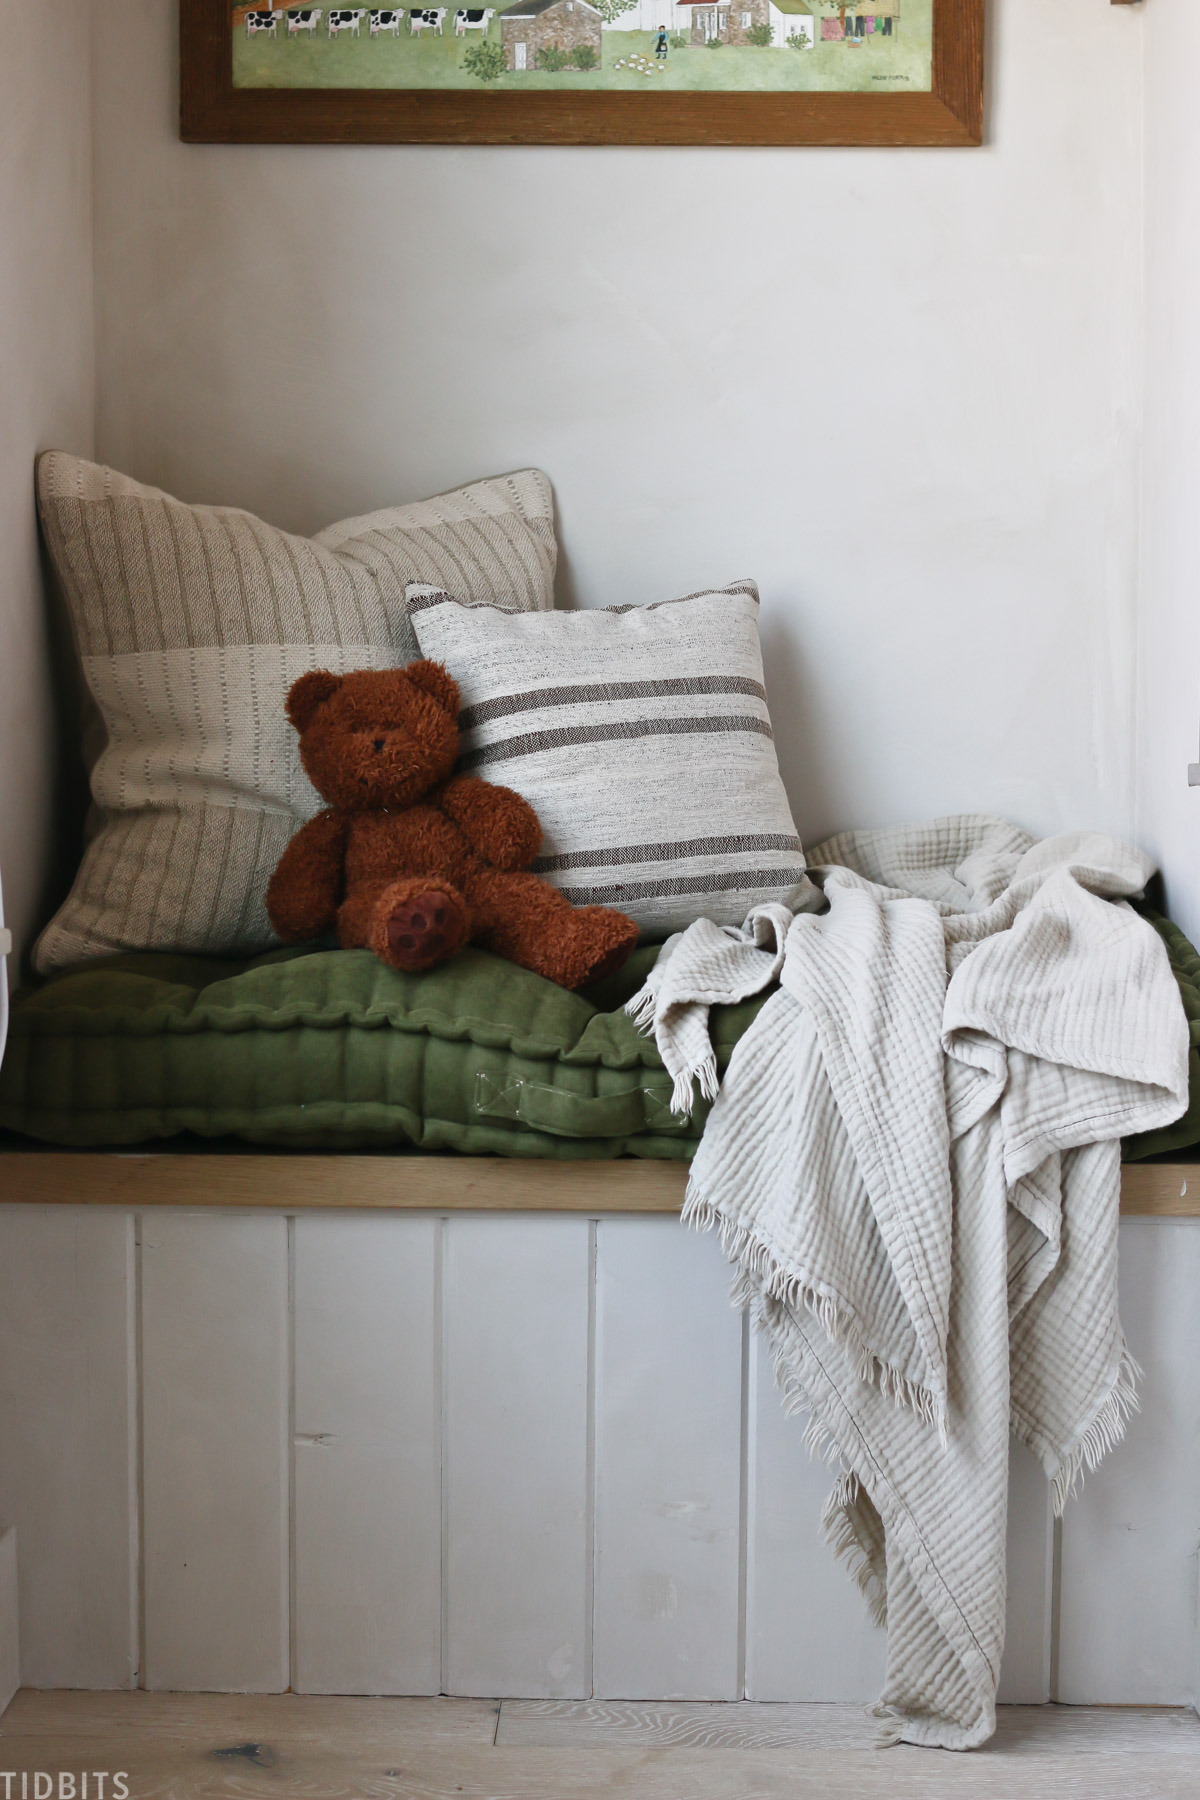 teddy bear, throw pillows, a throw blanket, and a cushion on top of a built in bench